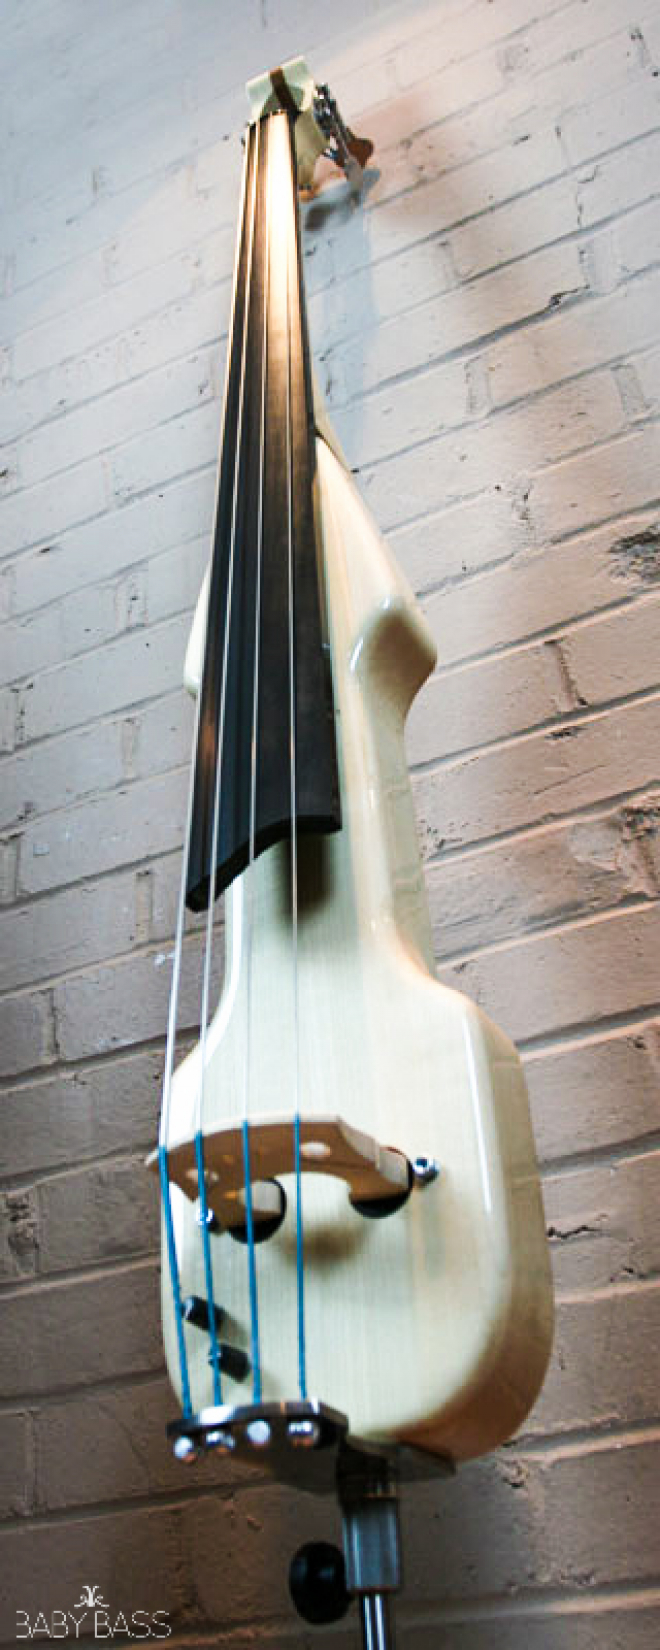 KK Baby Bass – Electric Upright Bass KB2 – Maple Body Side